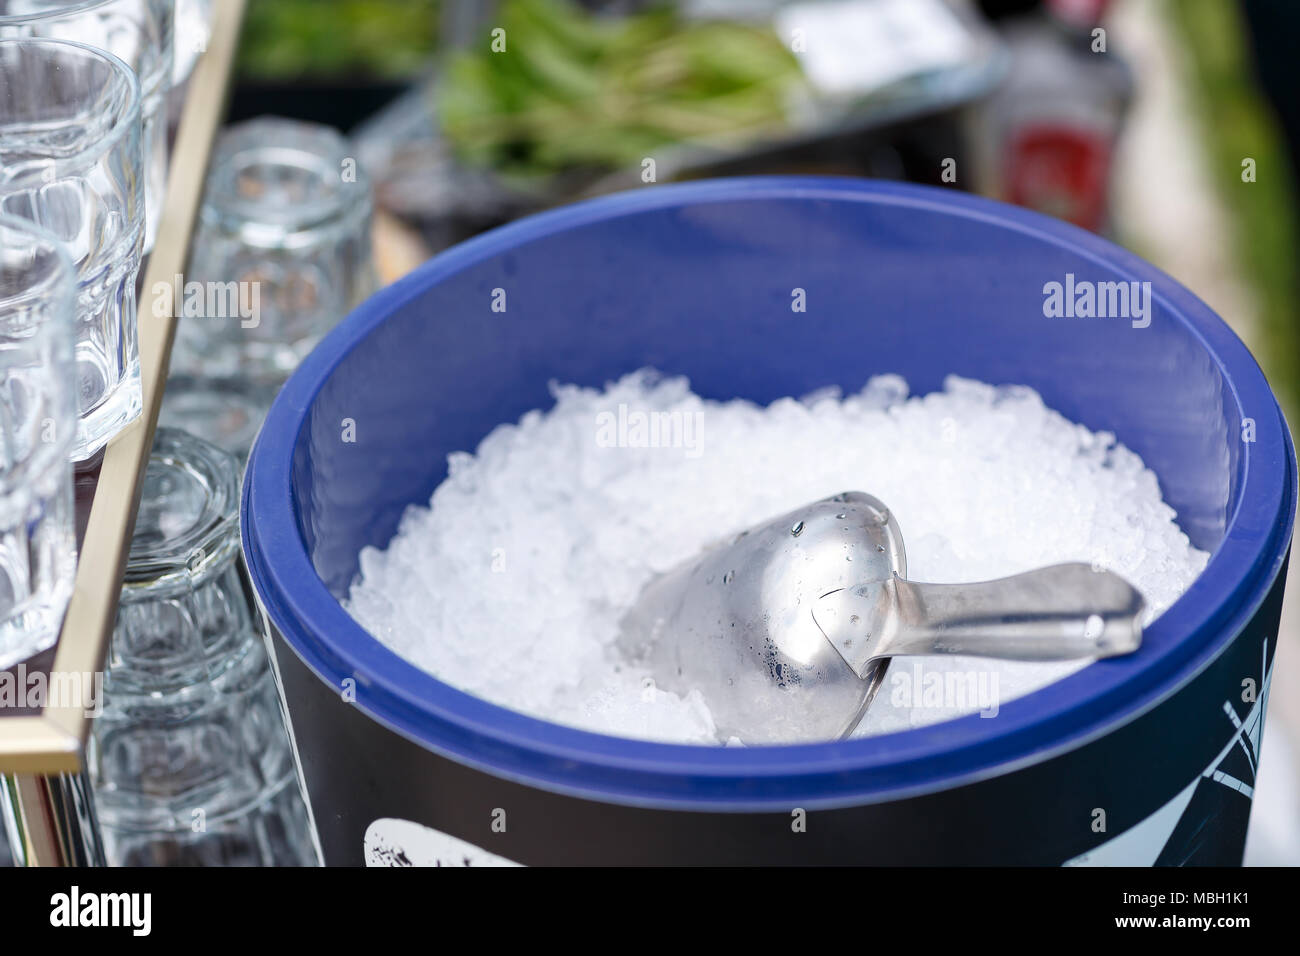 Ice Tube in Ice Bucket. Pieces of ice on a glass tray. The view from the top. - Stock Image